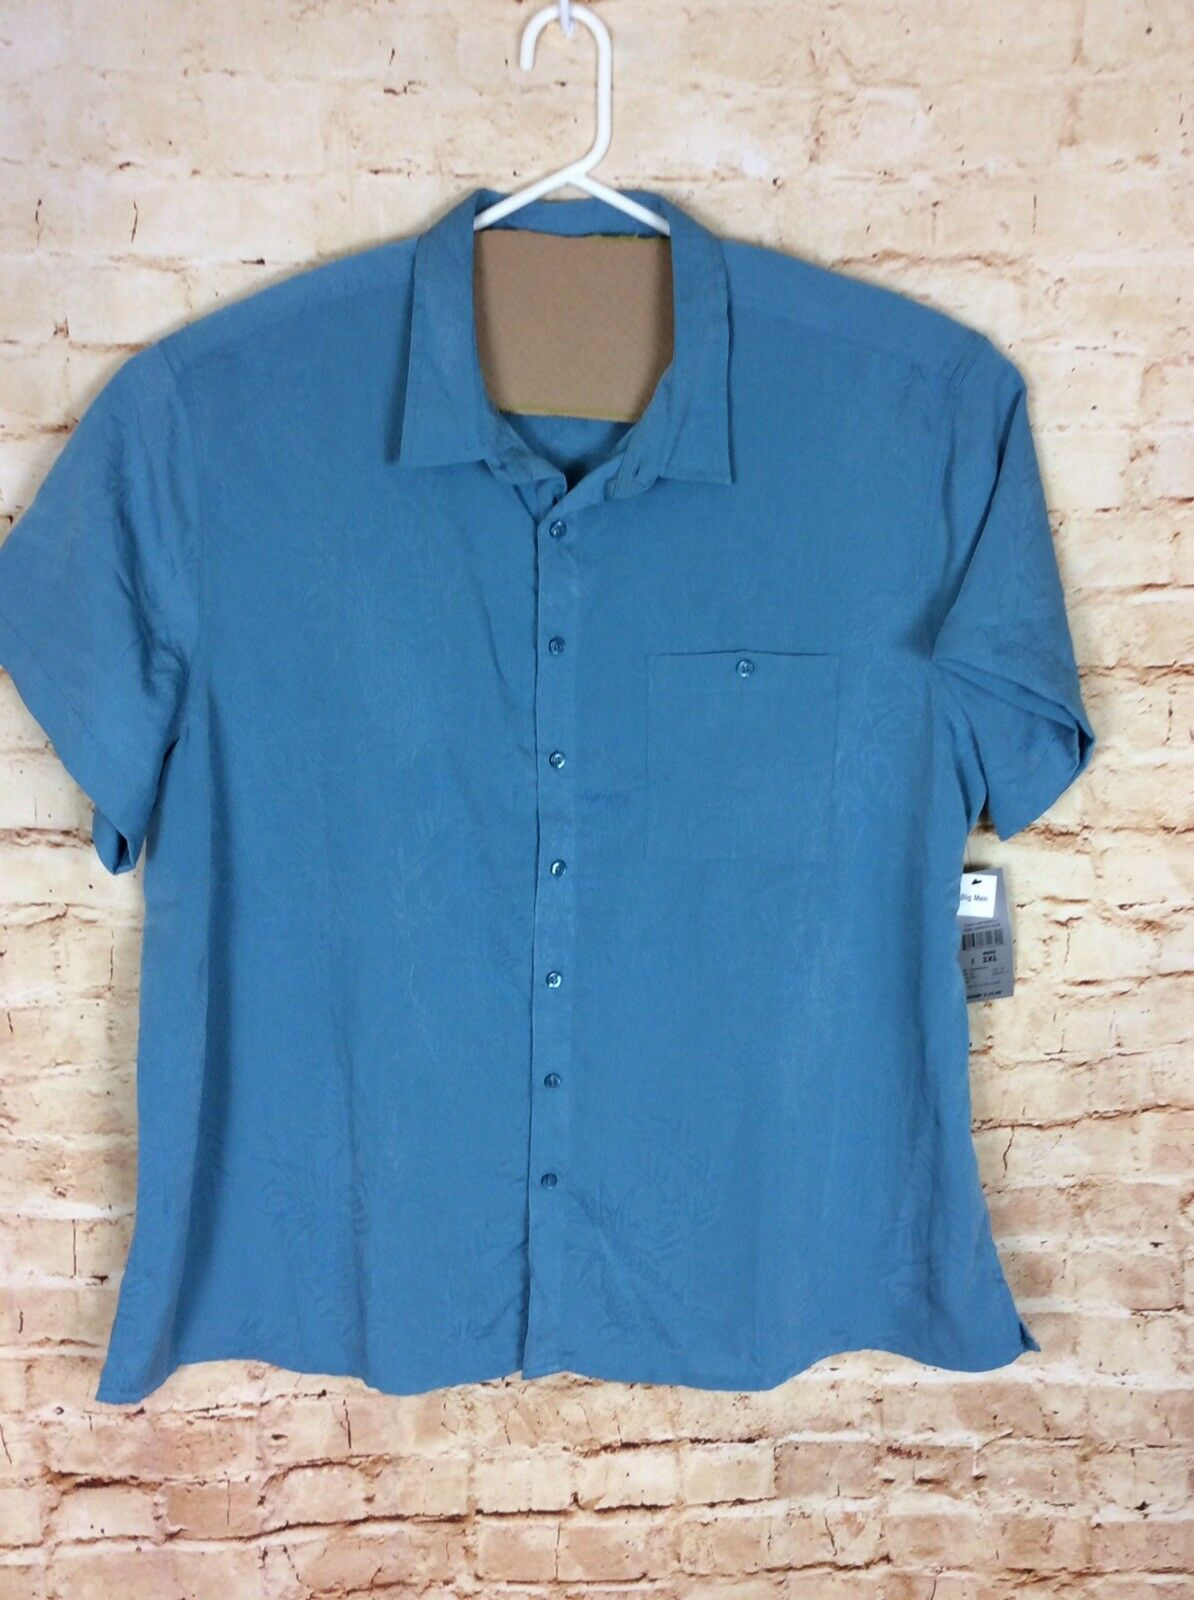 B Line Sport Men's 3XL Palm Tree Pattern Button Front Down Shirt Teal bluee- NWT